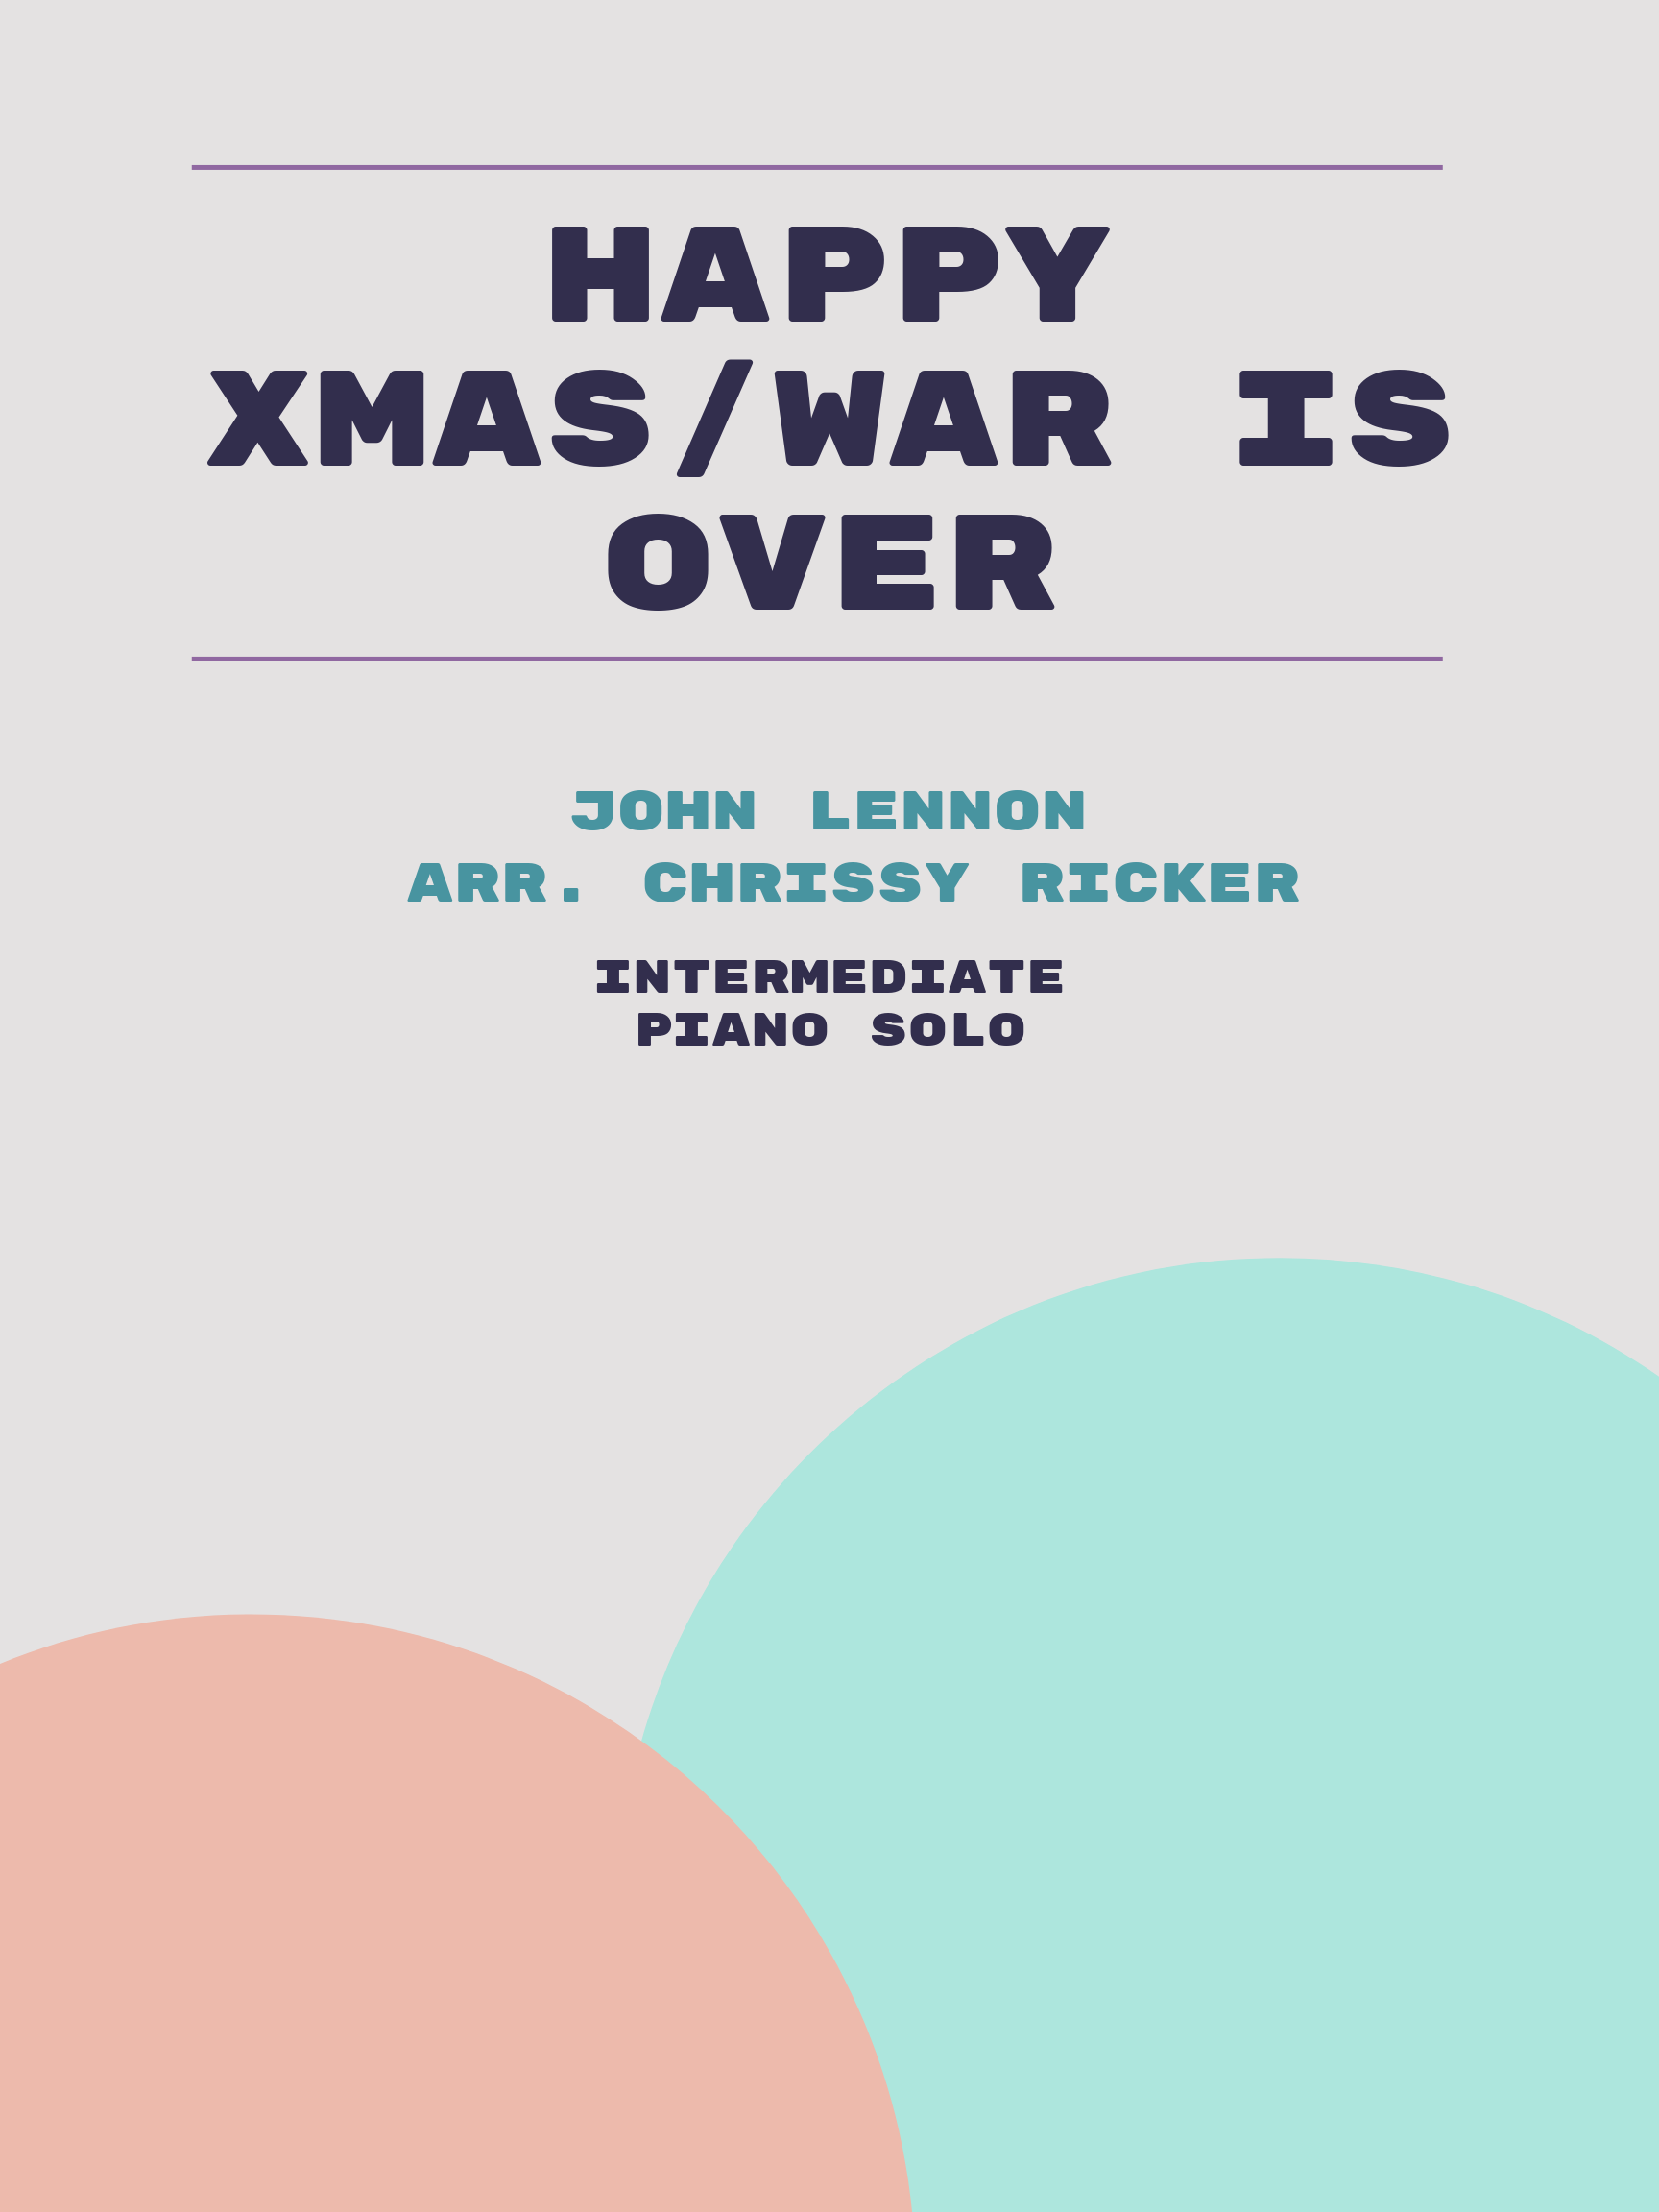 Happy Xmas/War is Over by John Lennon